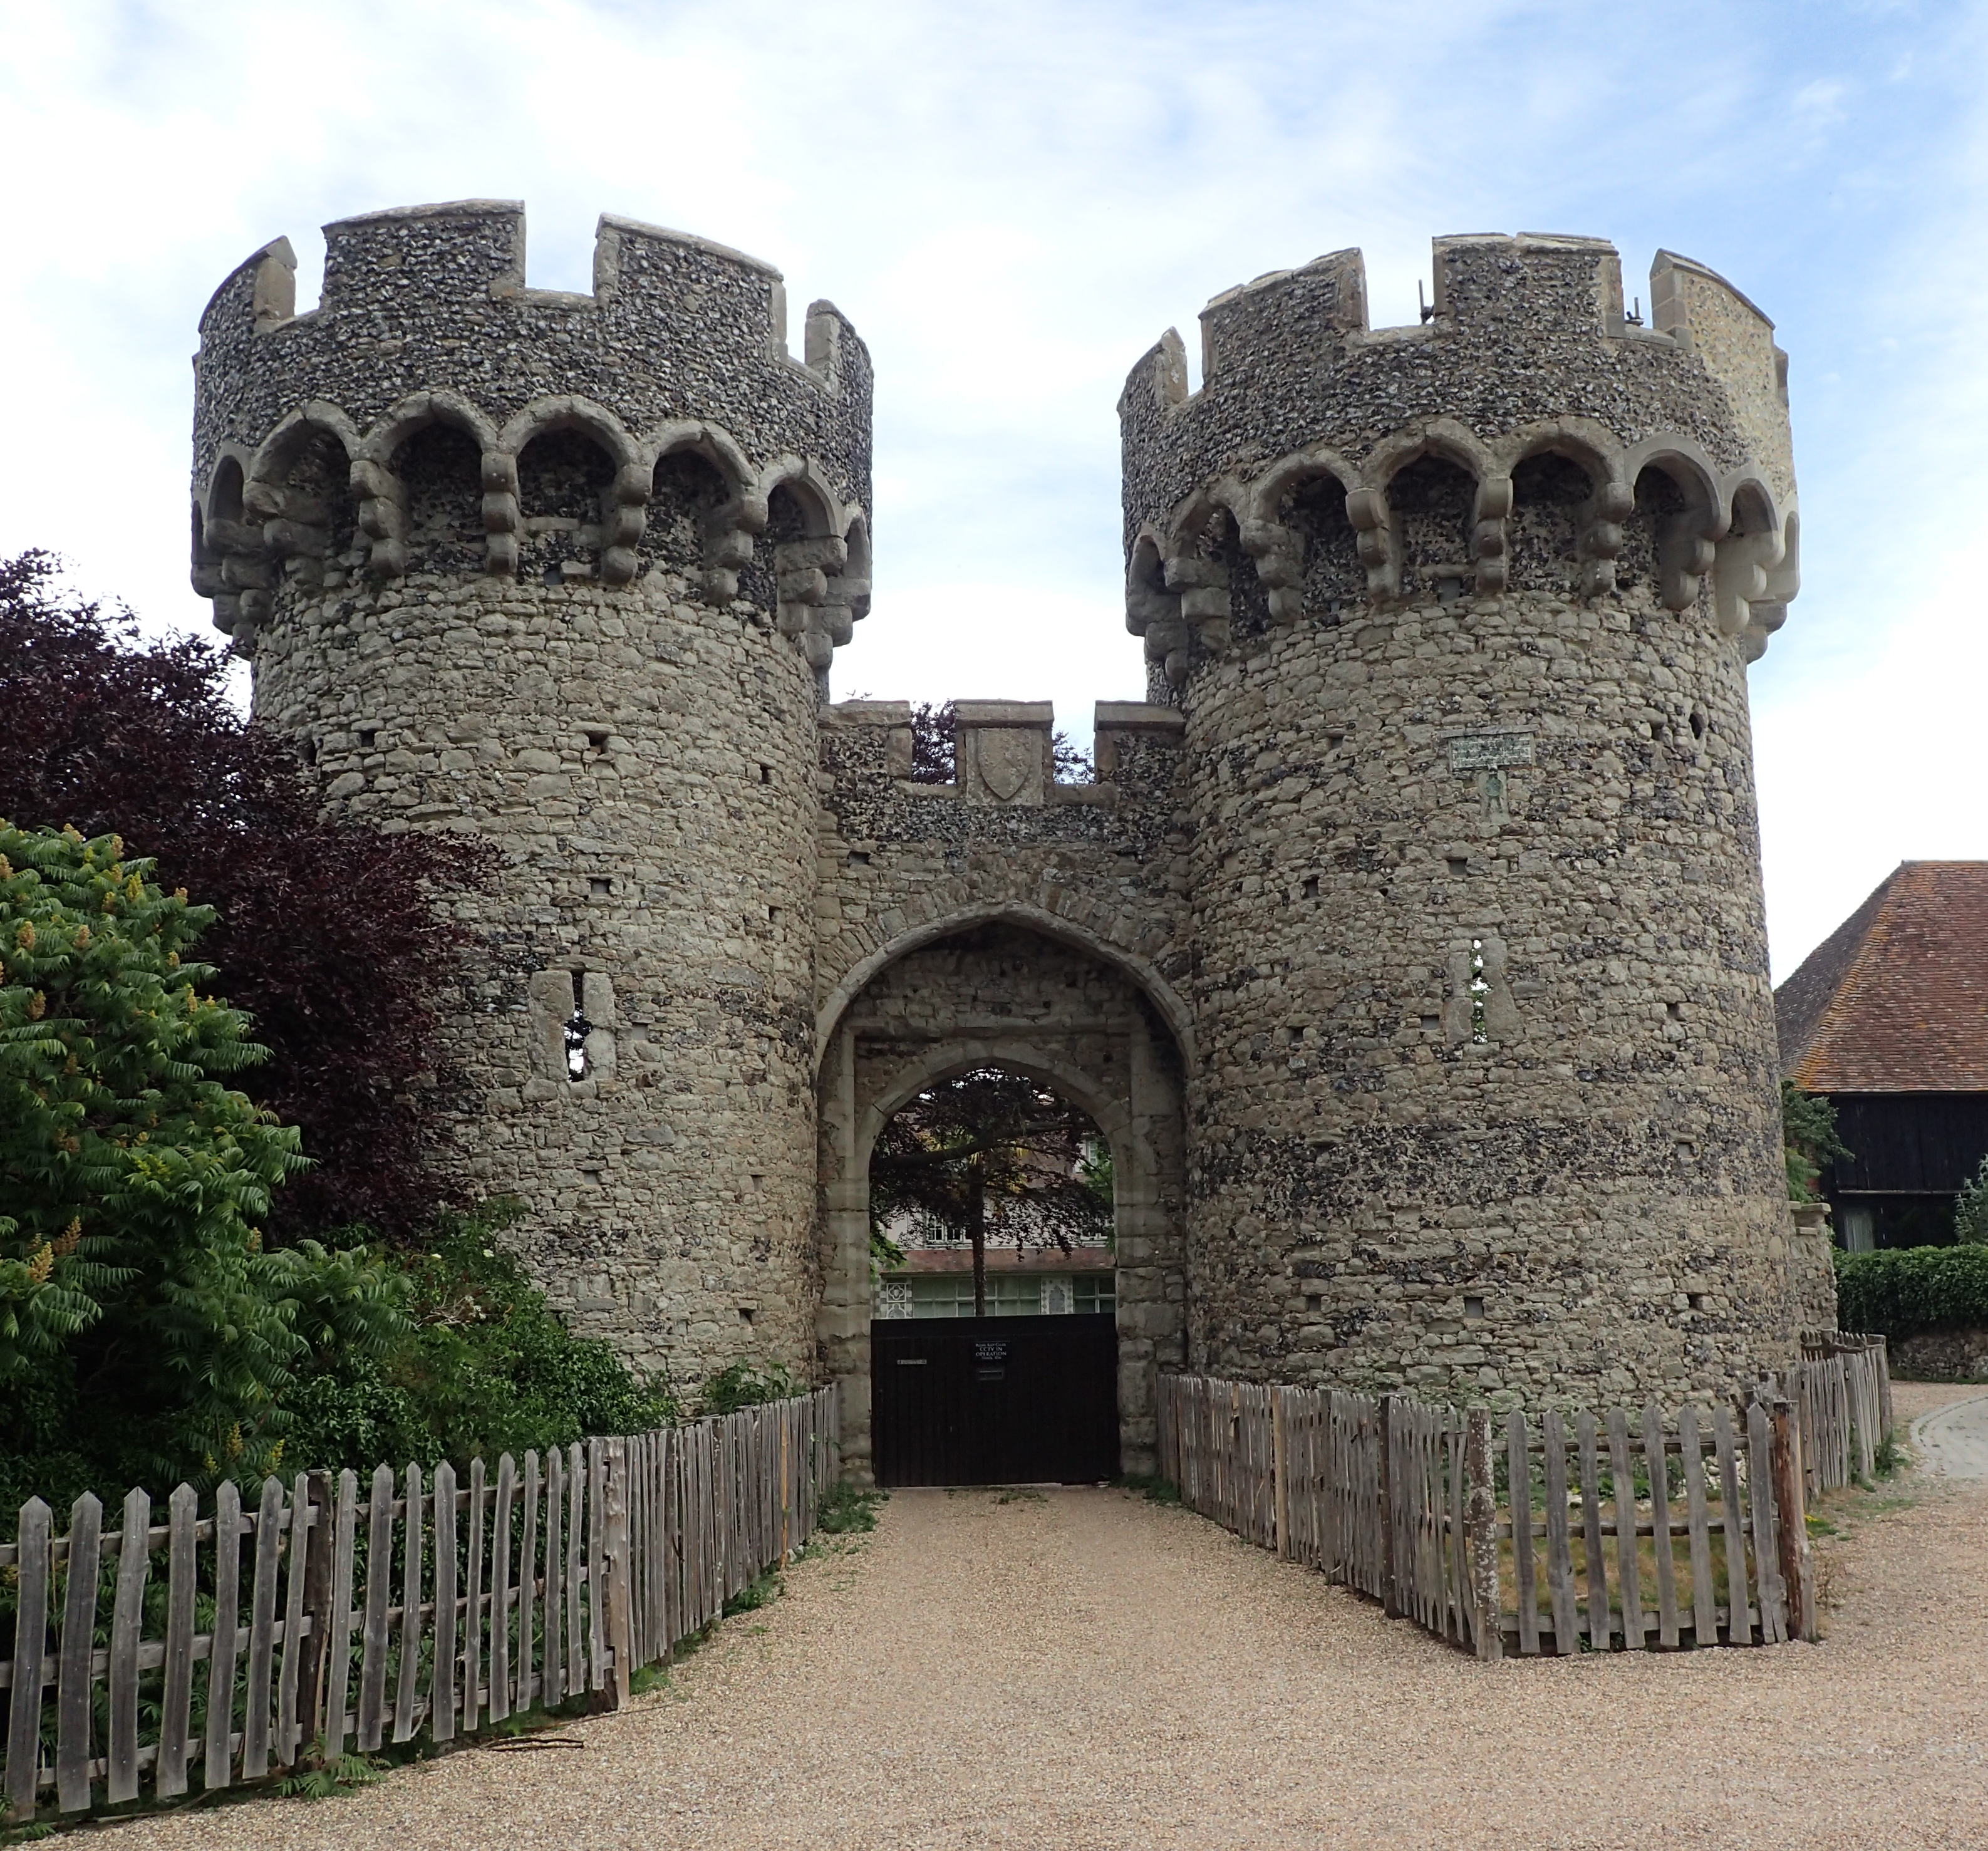 Outer gatehouse of 14th century Cooling Castle